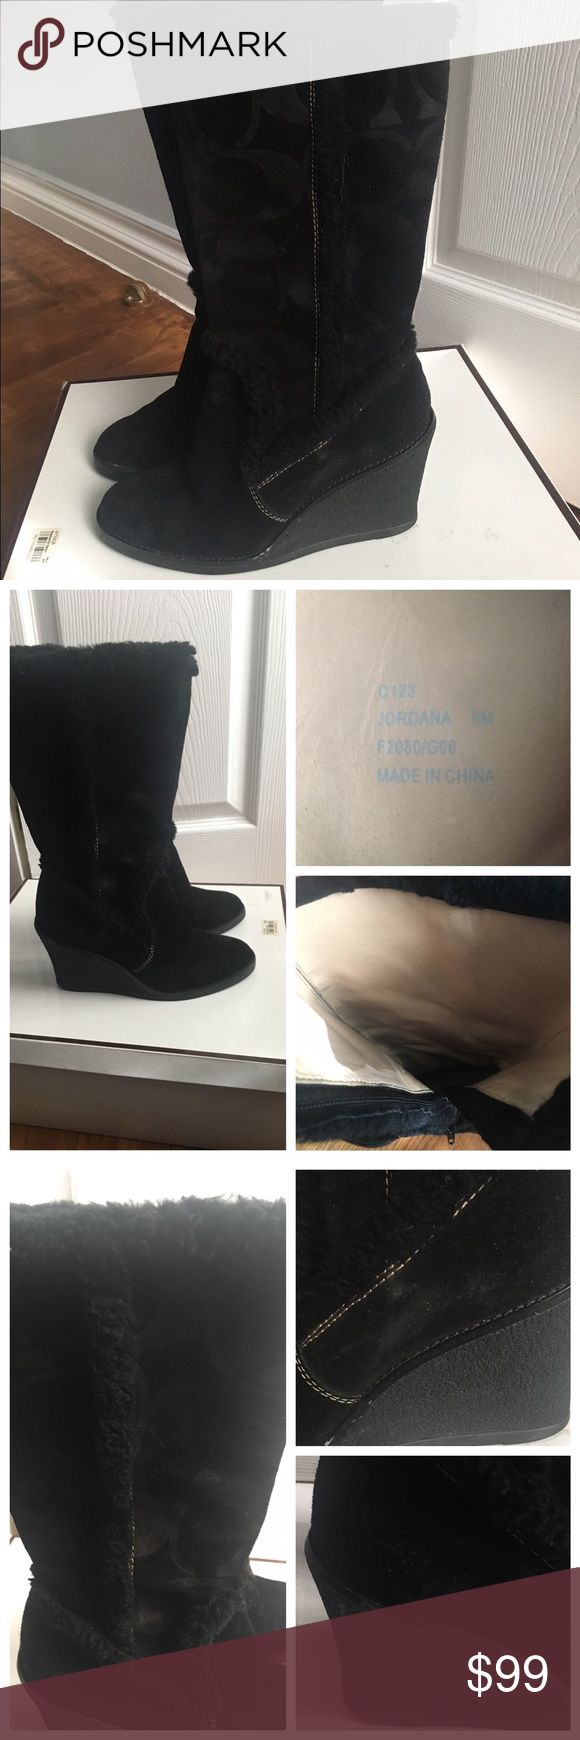 Coach black suede wedge boots Coach black suede boots, this boots are wedges. This item is worn with some signs of wear on the outside (sides). The inside is beige leather the black color rubbed of on it and inside the foot part kinda of worn out but when you wear it doesn't show. Size 6. Bought it from Macy's. Coach Shoes Wedges